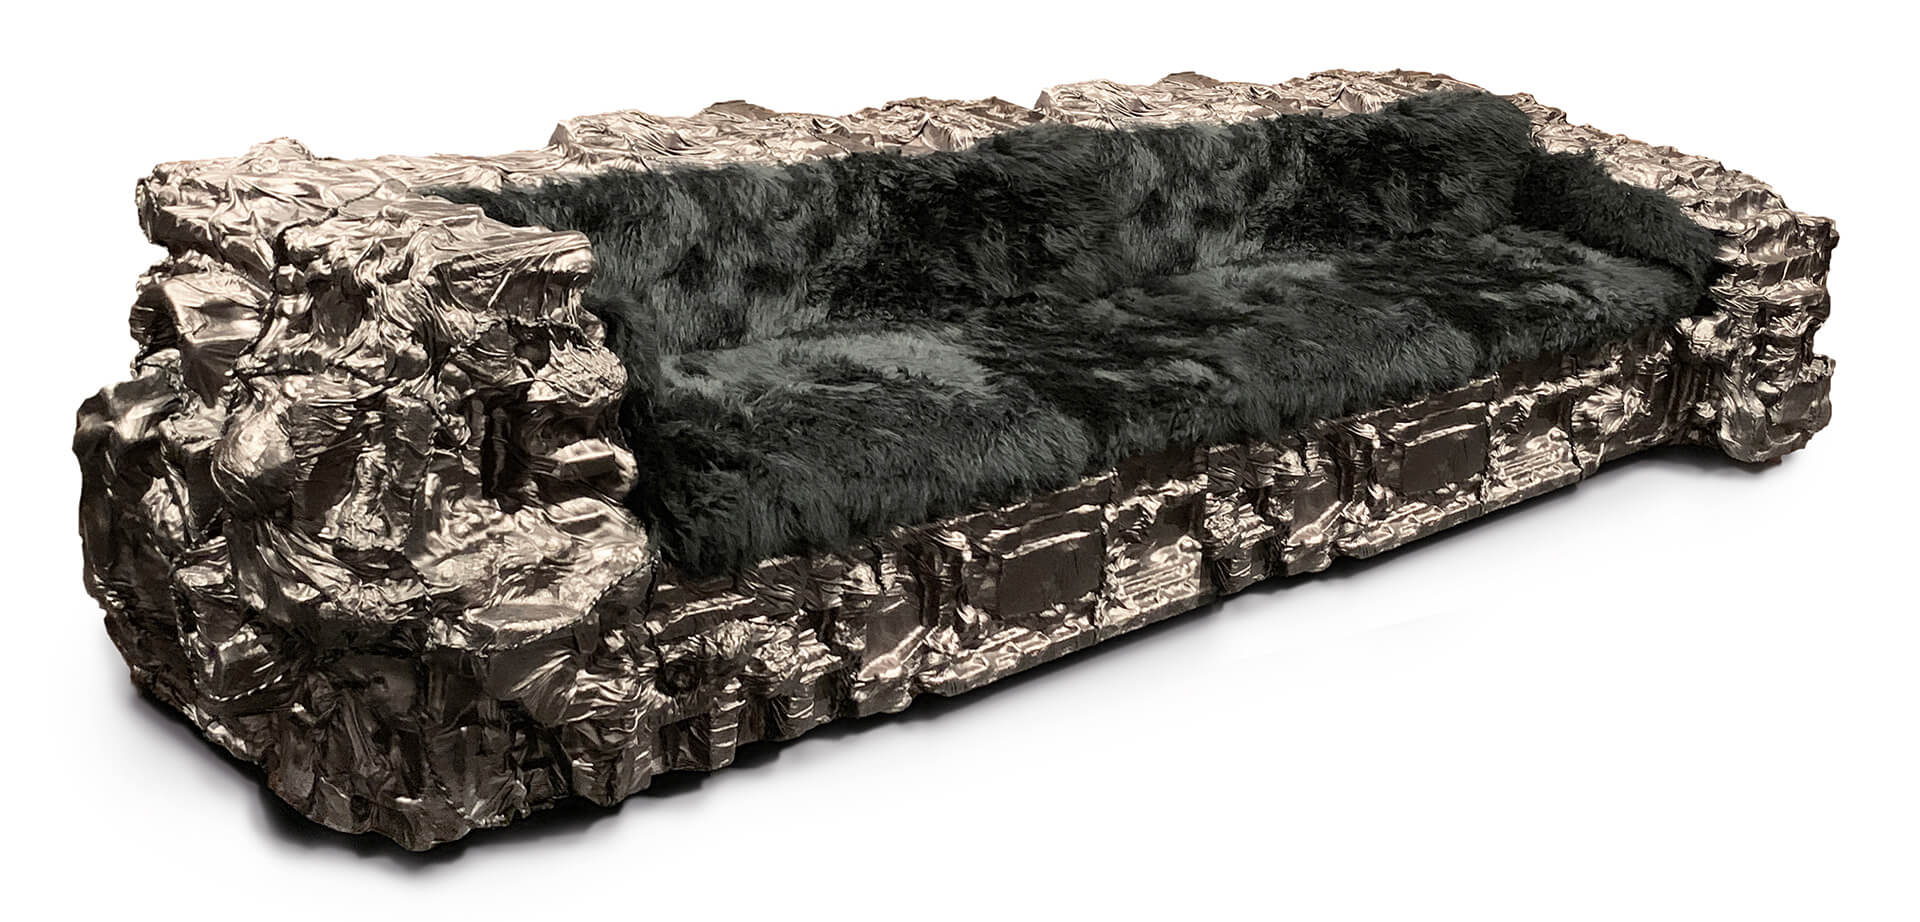 Galactica Sofa | Made in Brazil: Curated by Campana Brothers | STIR X Script |STIRworld